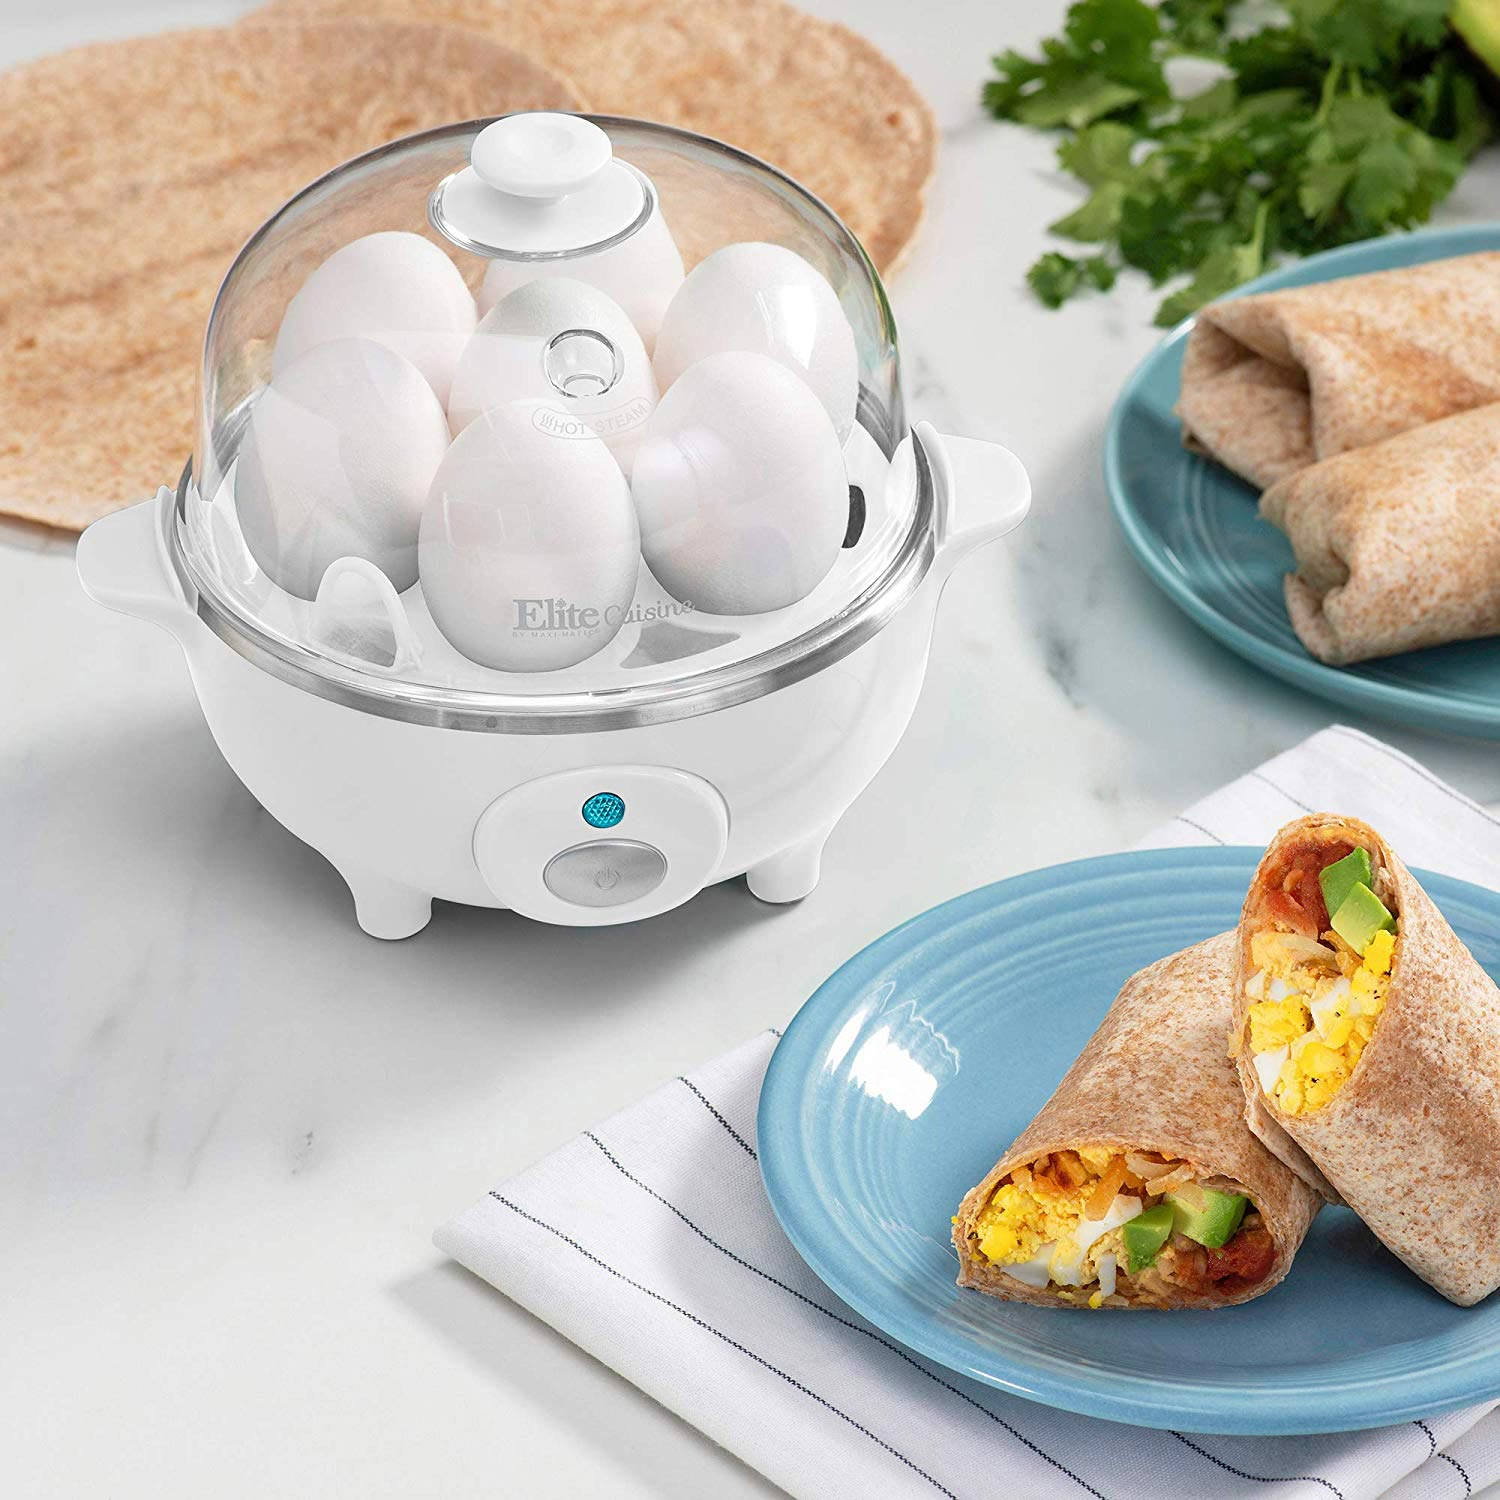 Egg cooker on a table with some breakfast foods